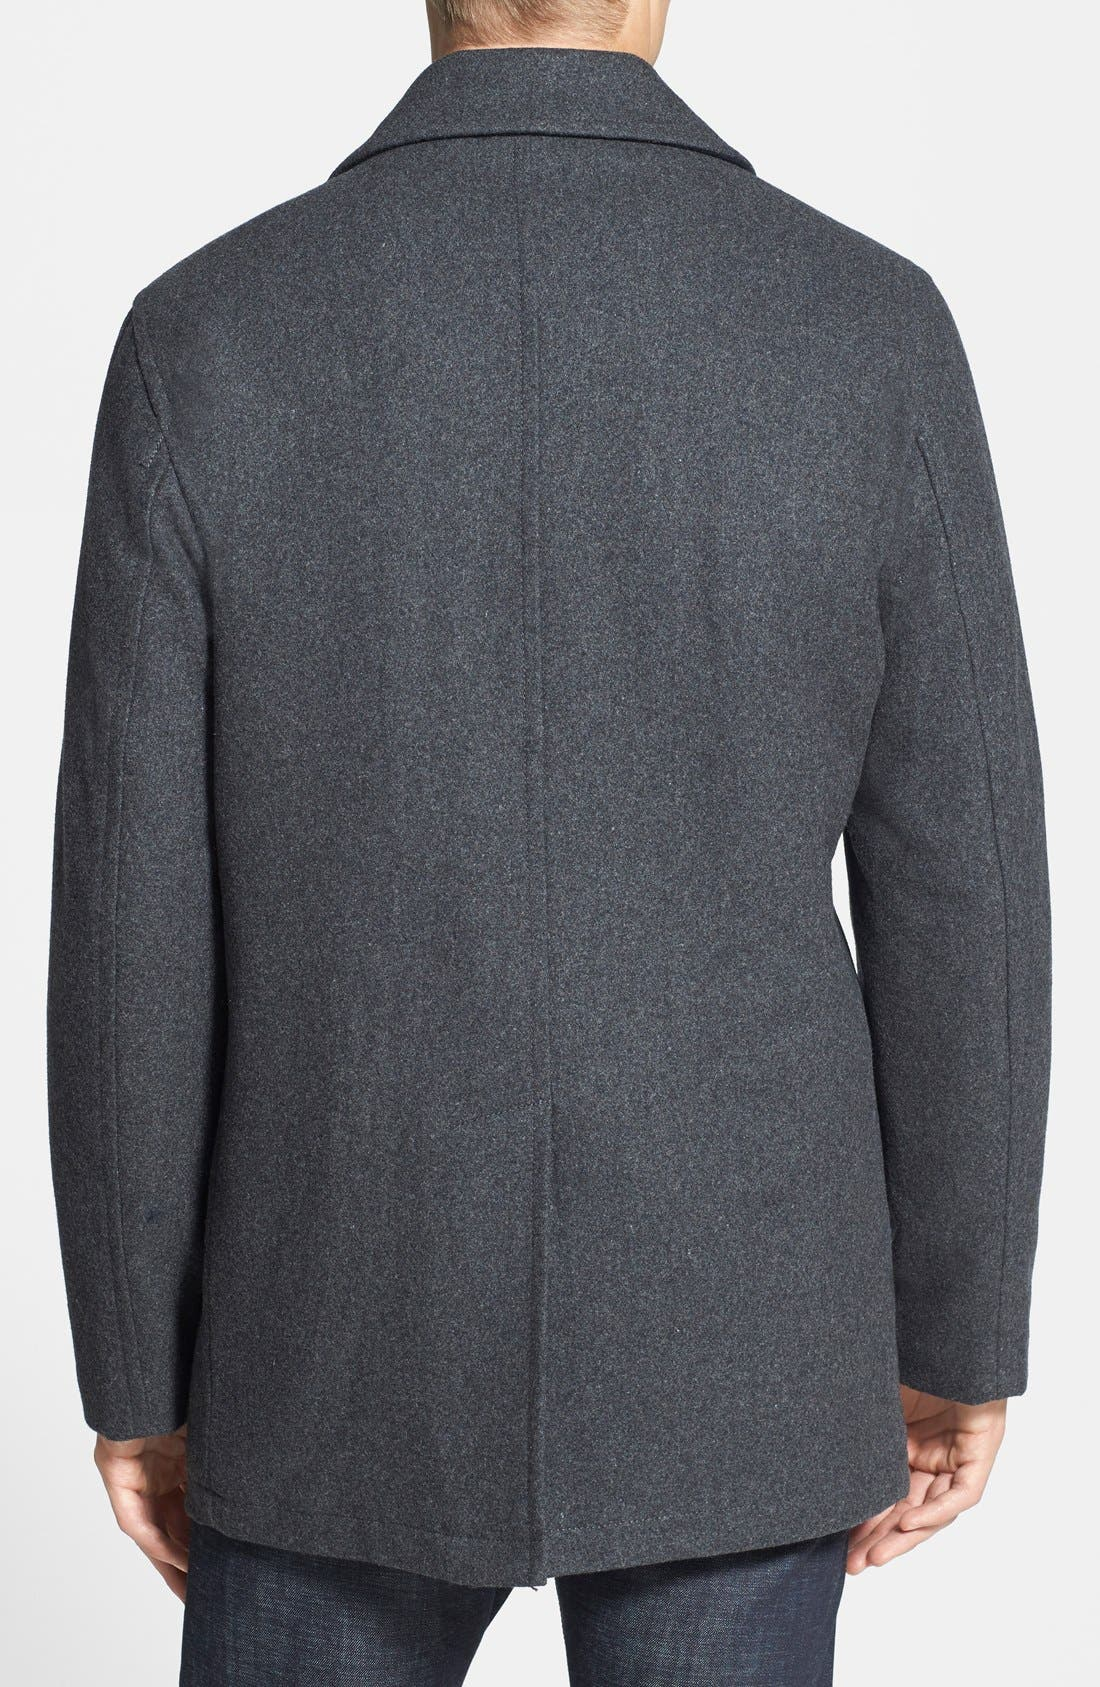 Wool Blend Double Breasted Peacoat,                             Alternate thumbnail 25, color,